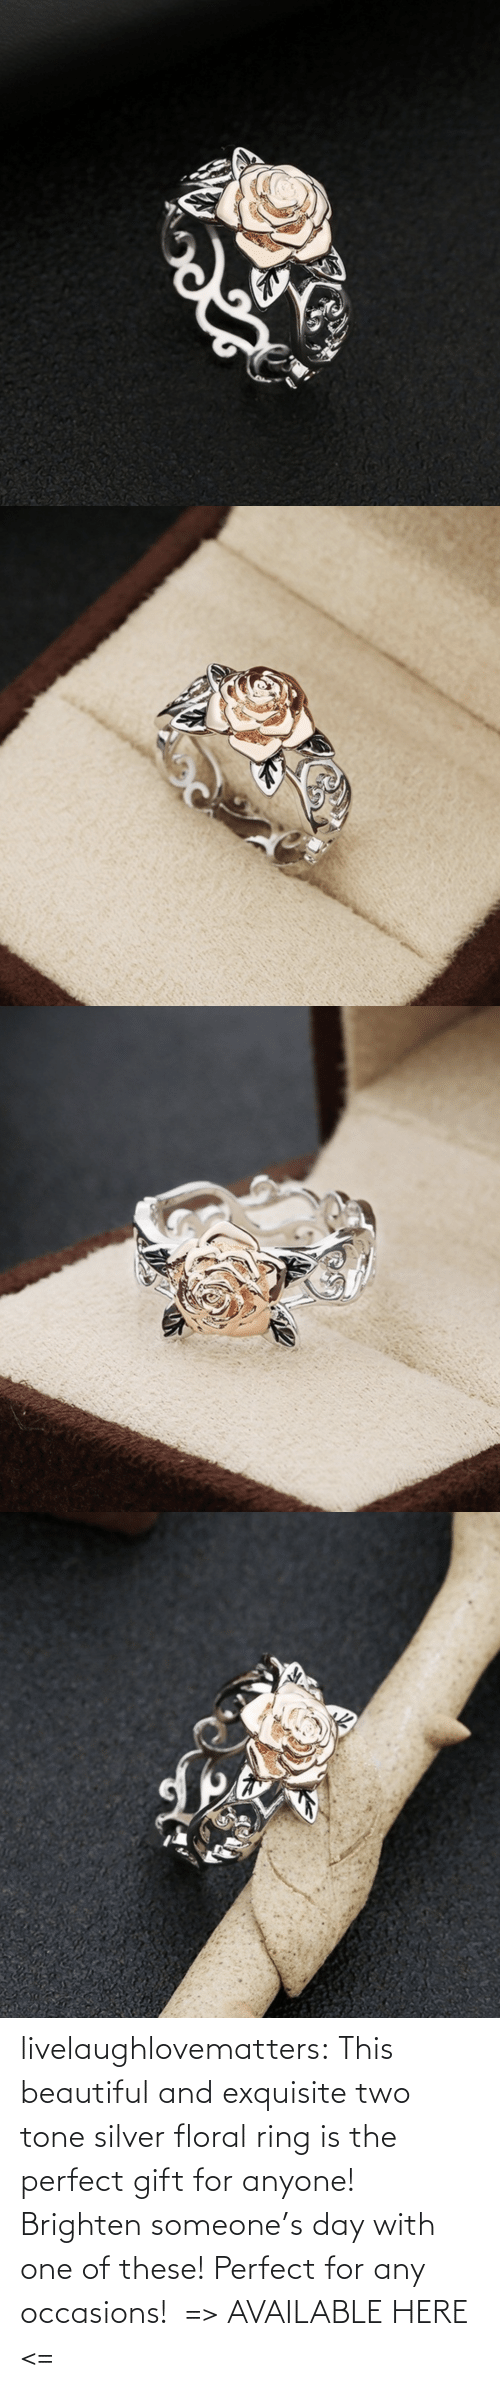 tone: livelaughlovematters: This beautiful and exquisite two tone silver floral ring is the perfect gift for anyone! Brighten someone's day with one of these! Perfect for any occasions!  => AVAILABLE HERE <=